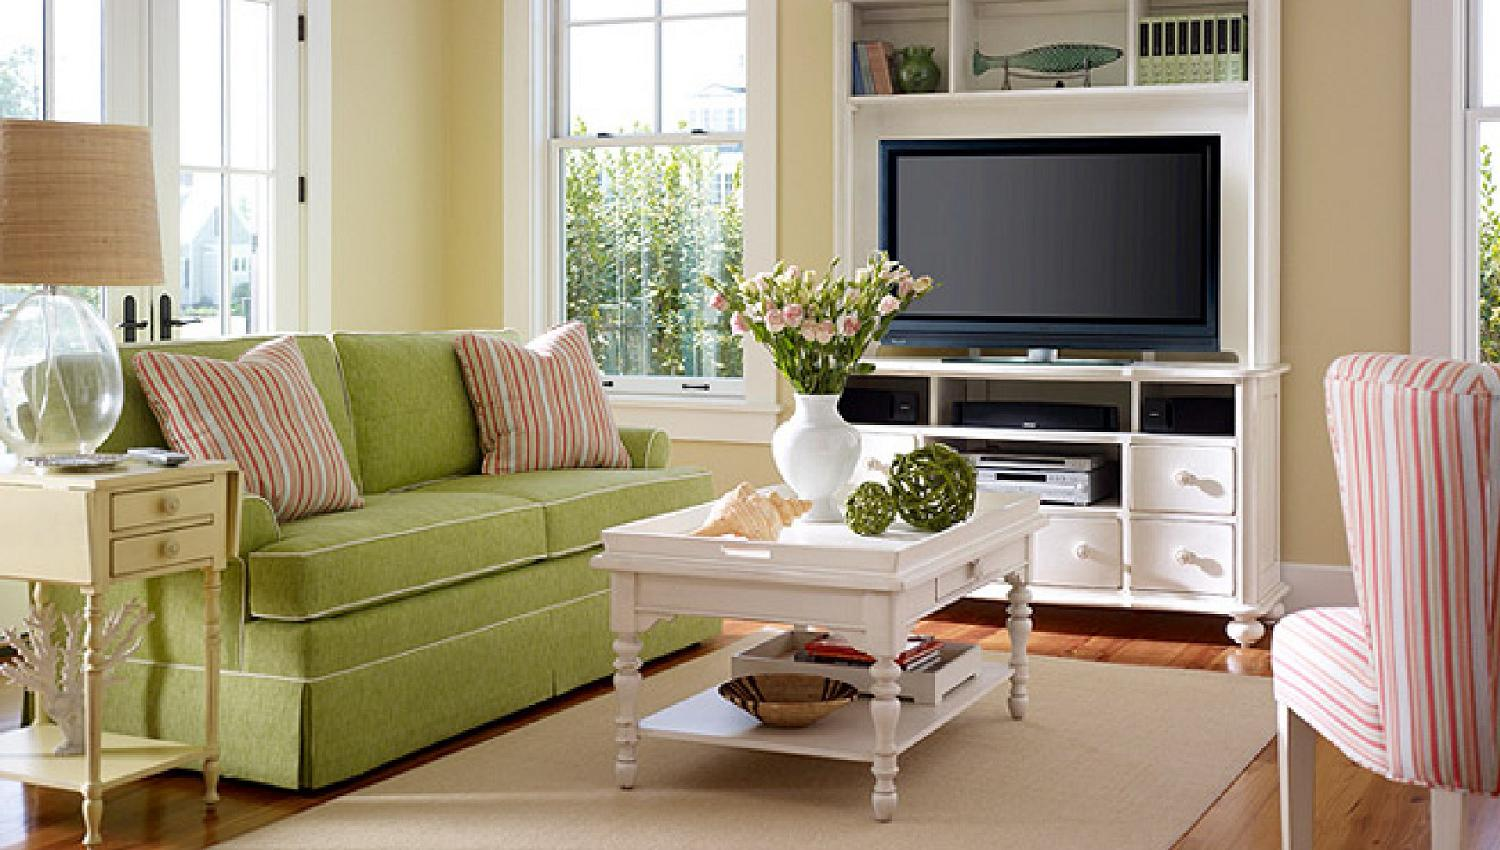 Perfect Small Country Living Room Decorating 1500 x 850 · 176 kB · jpeg